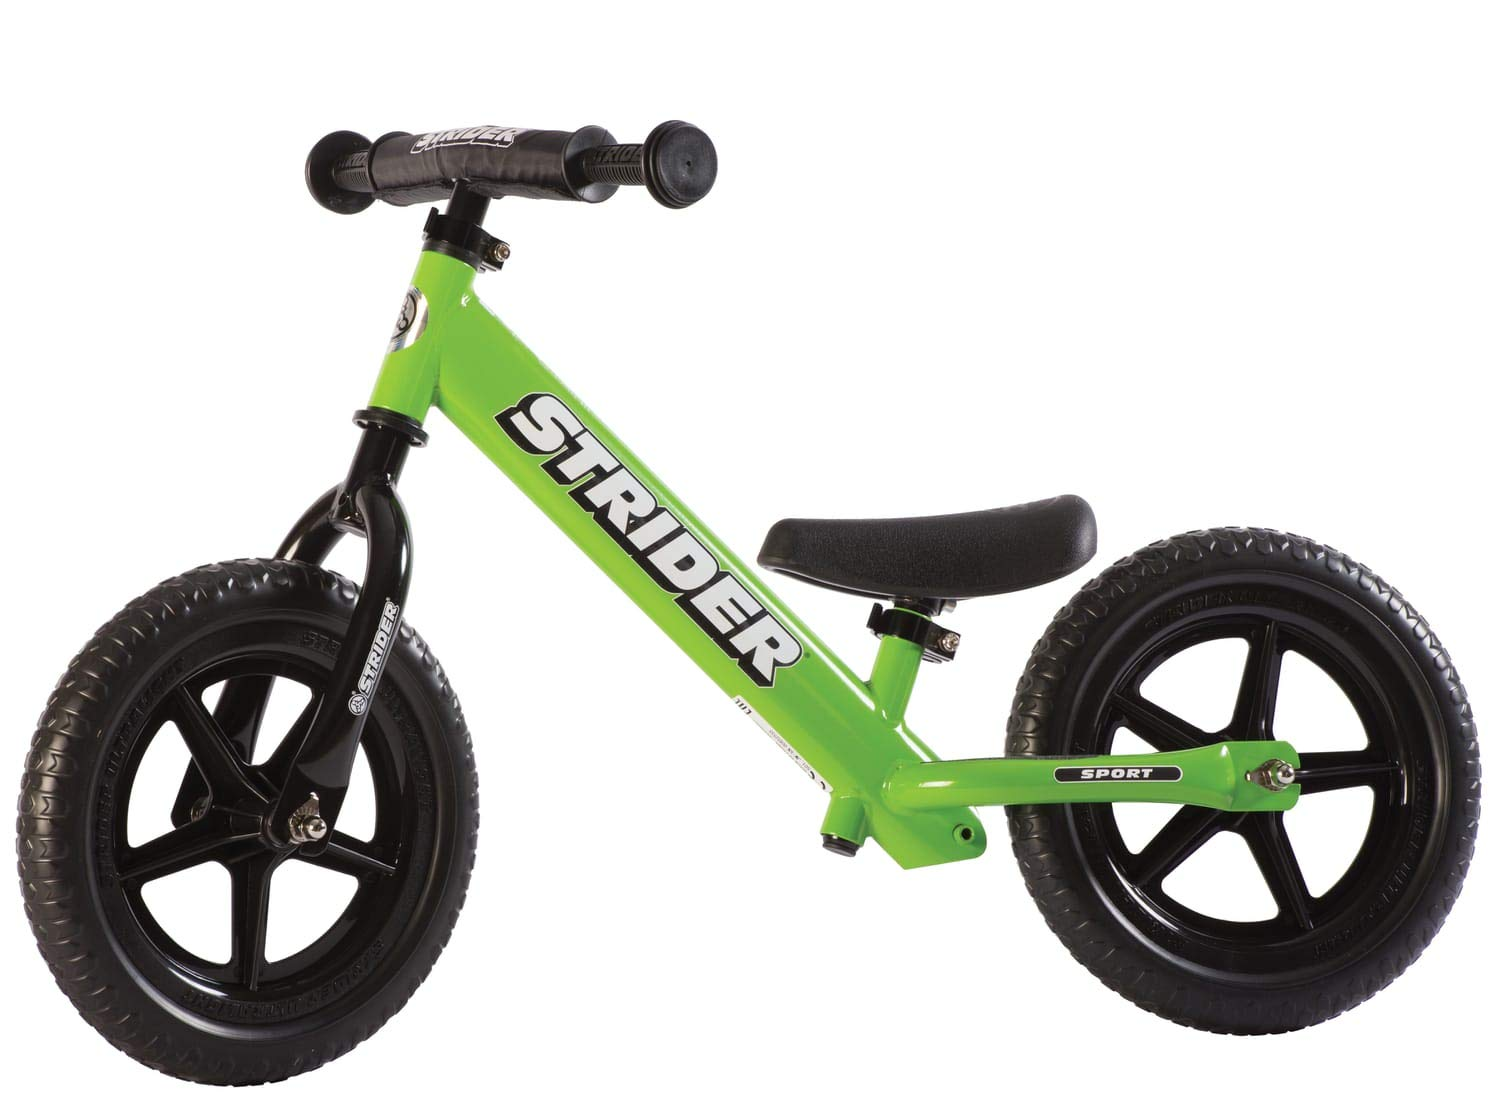 Ages 6 Months to 5 Years 12 Sport Baby Bundle with Balance Bike and Rocking Base Strider